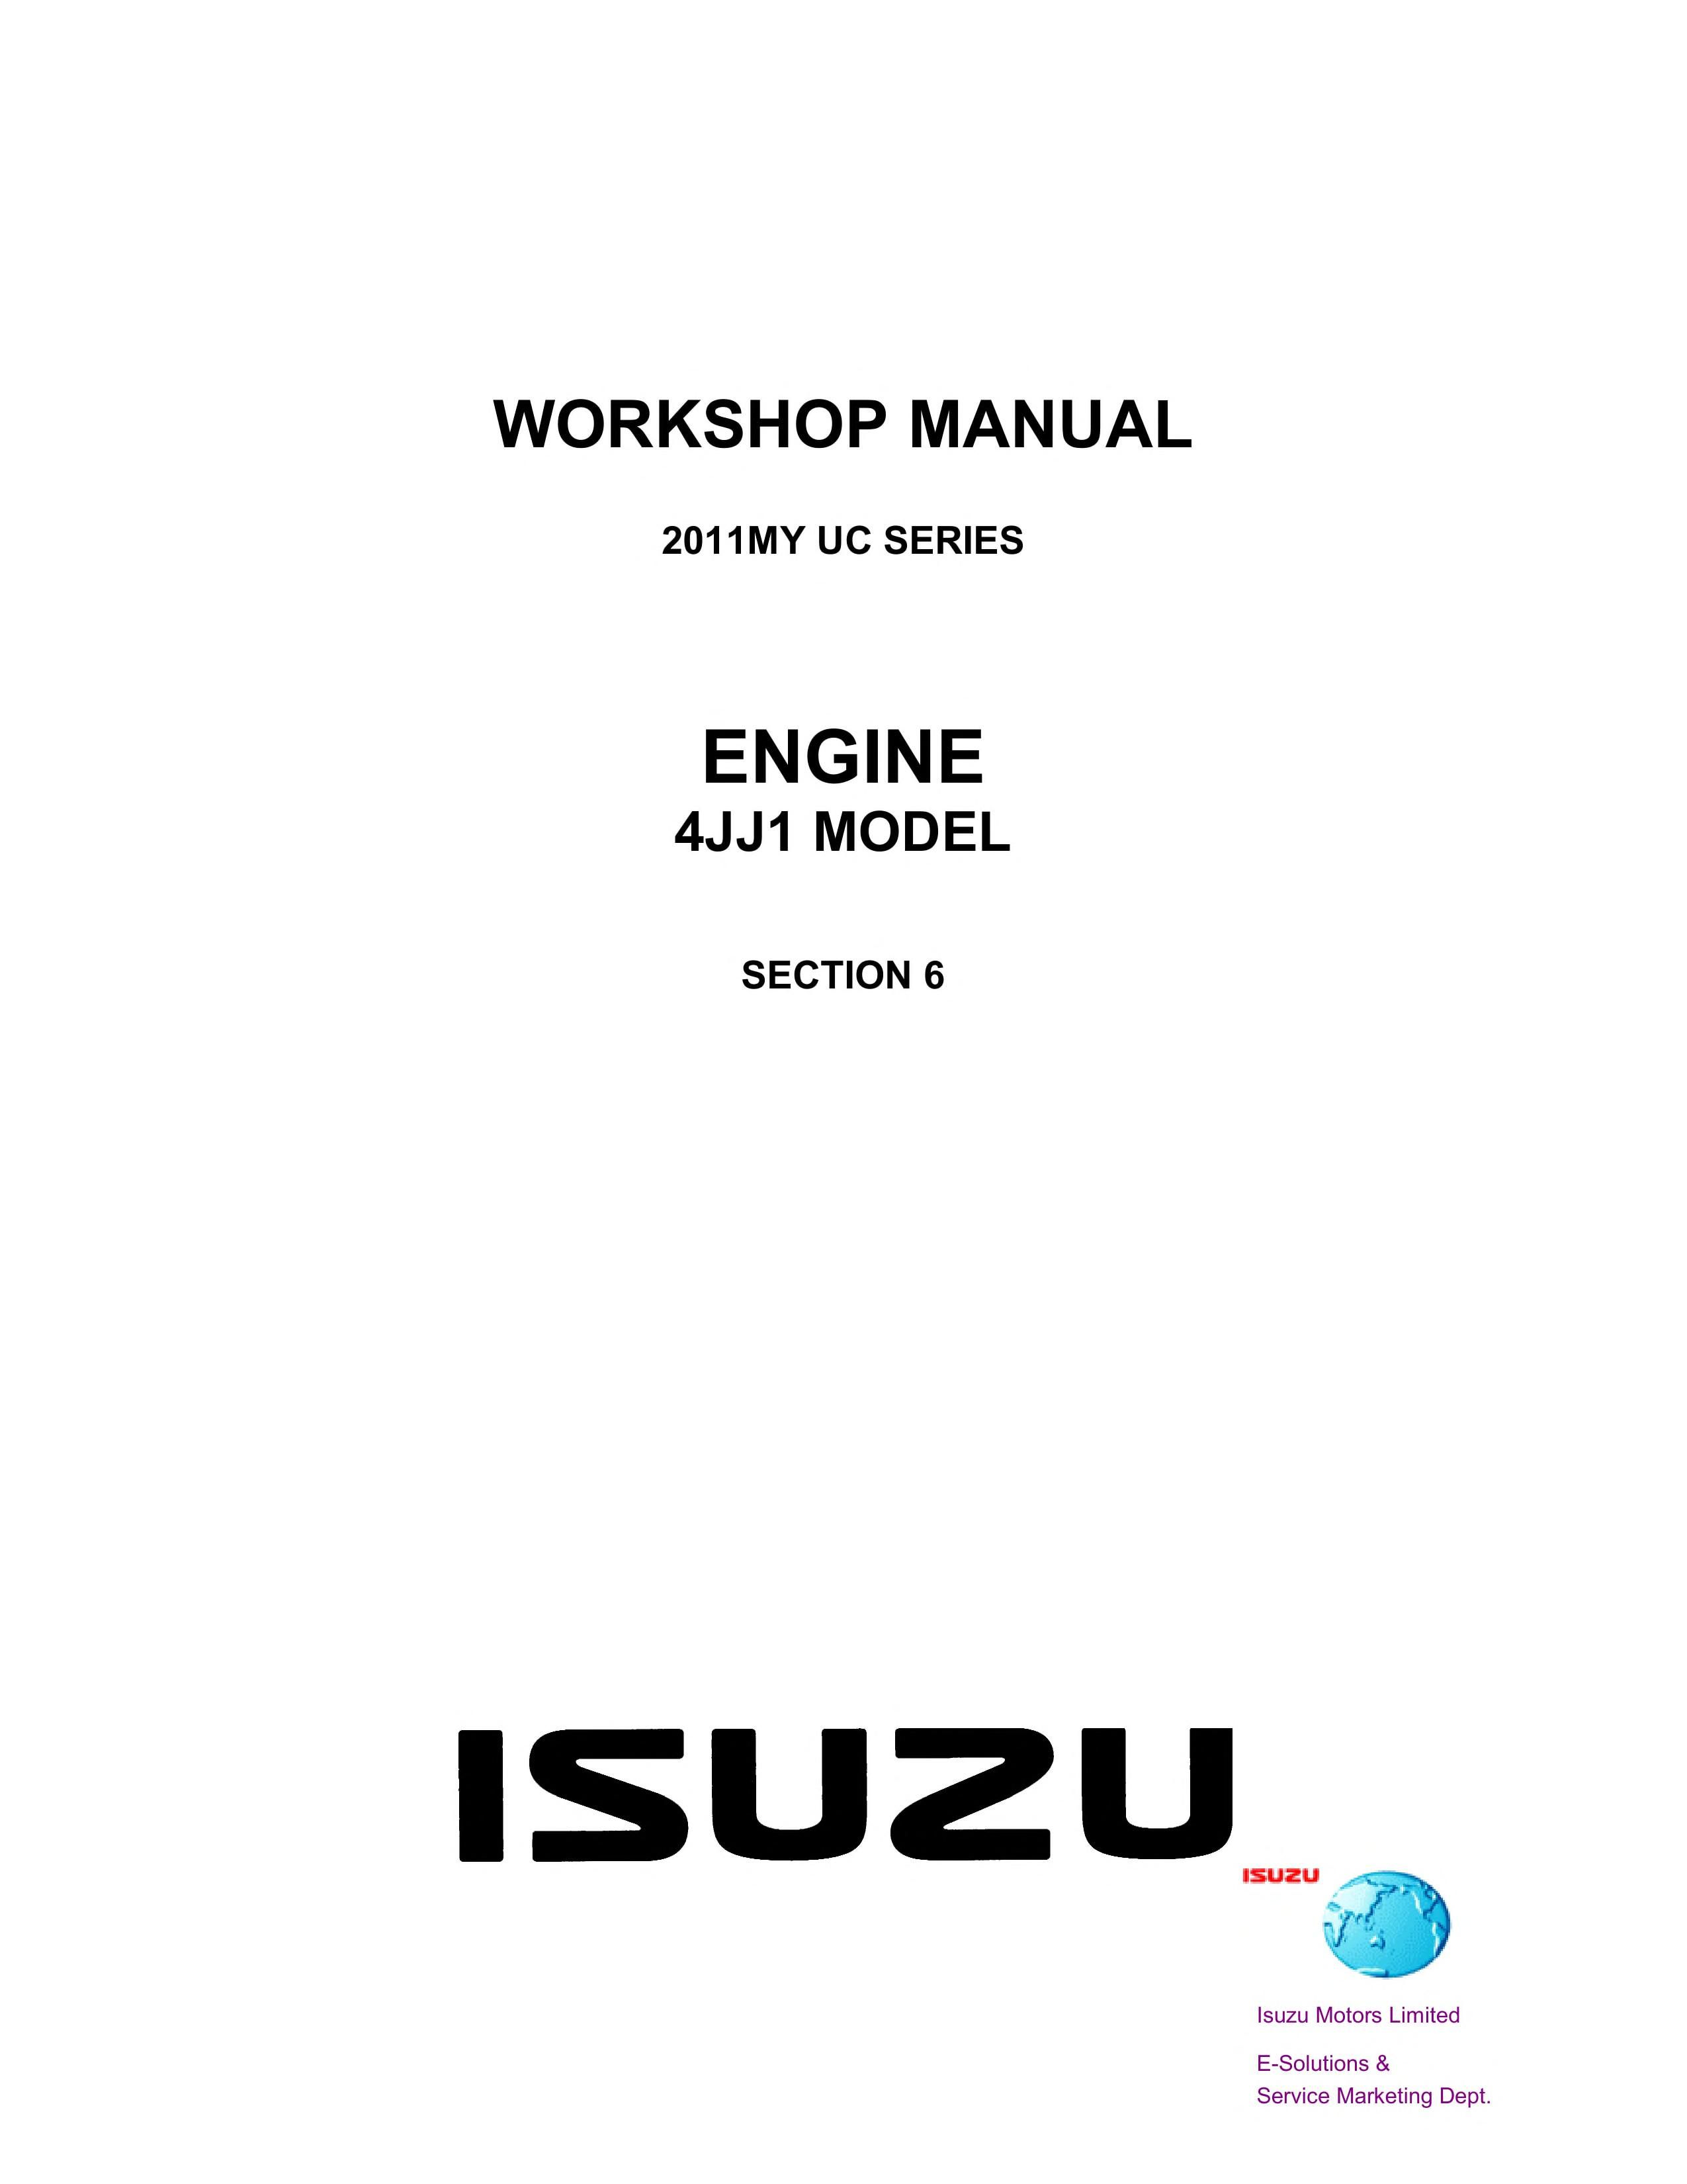 small resolution of isuzu d max 2011 4jj1 engine service manual pdf pdfy mirror free download borrow and streaming internet archive